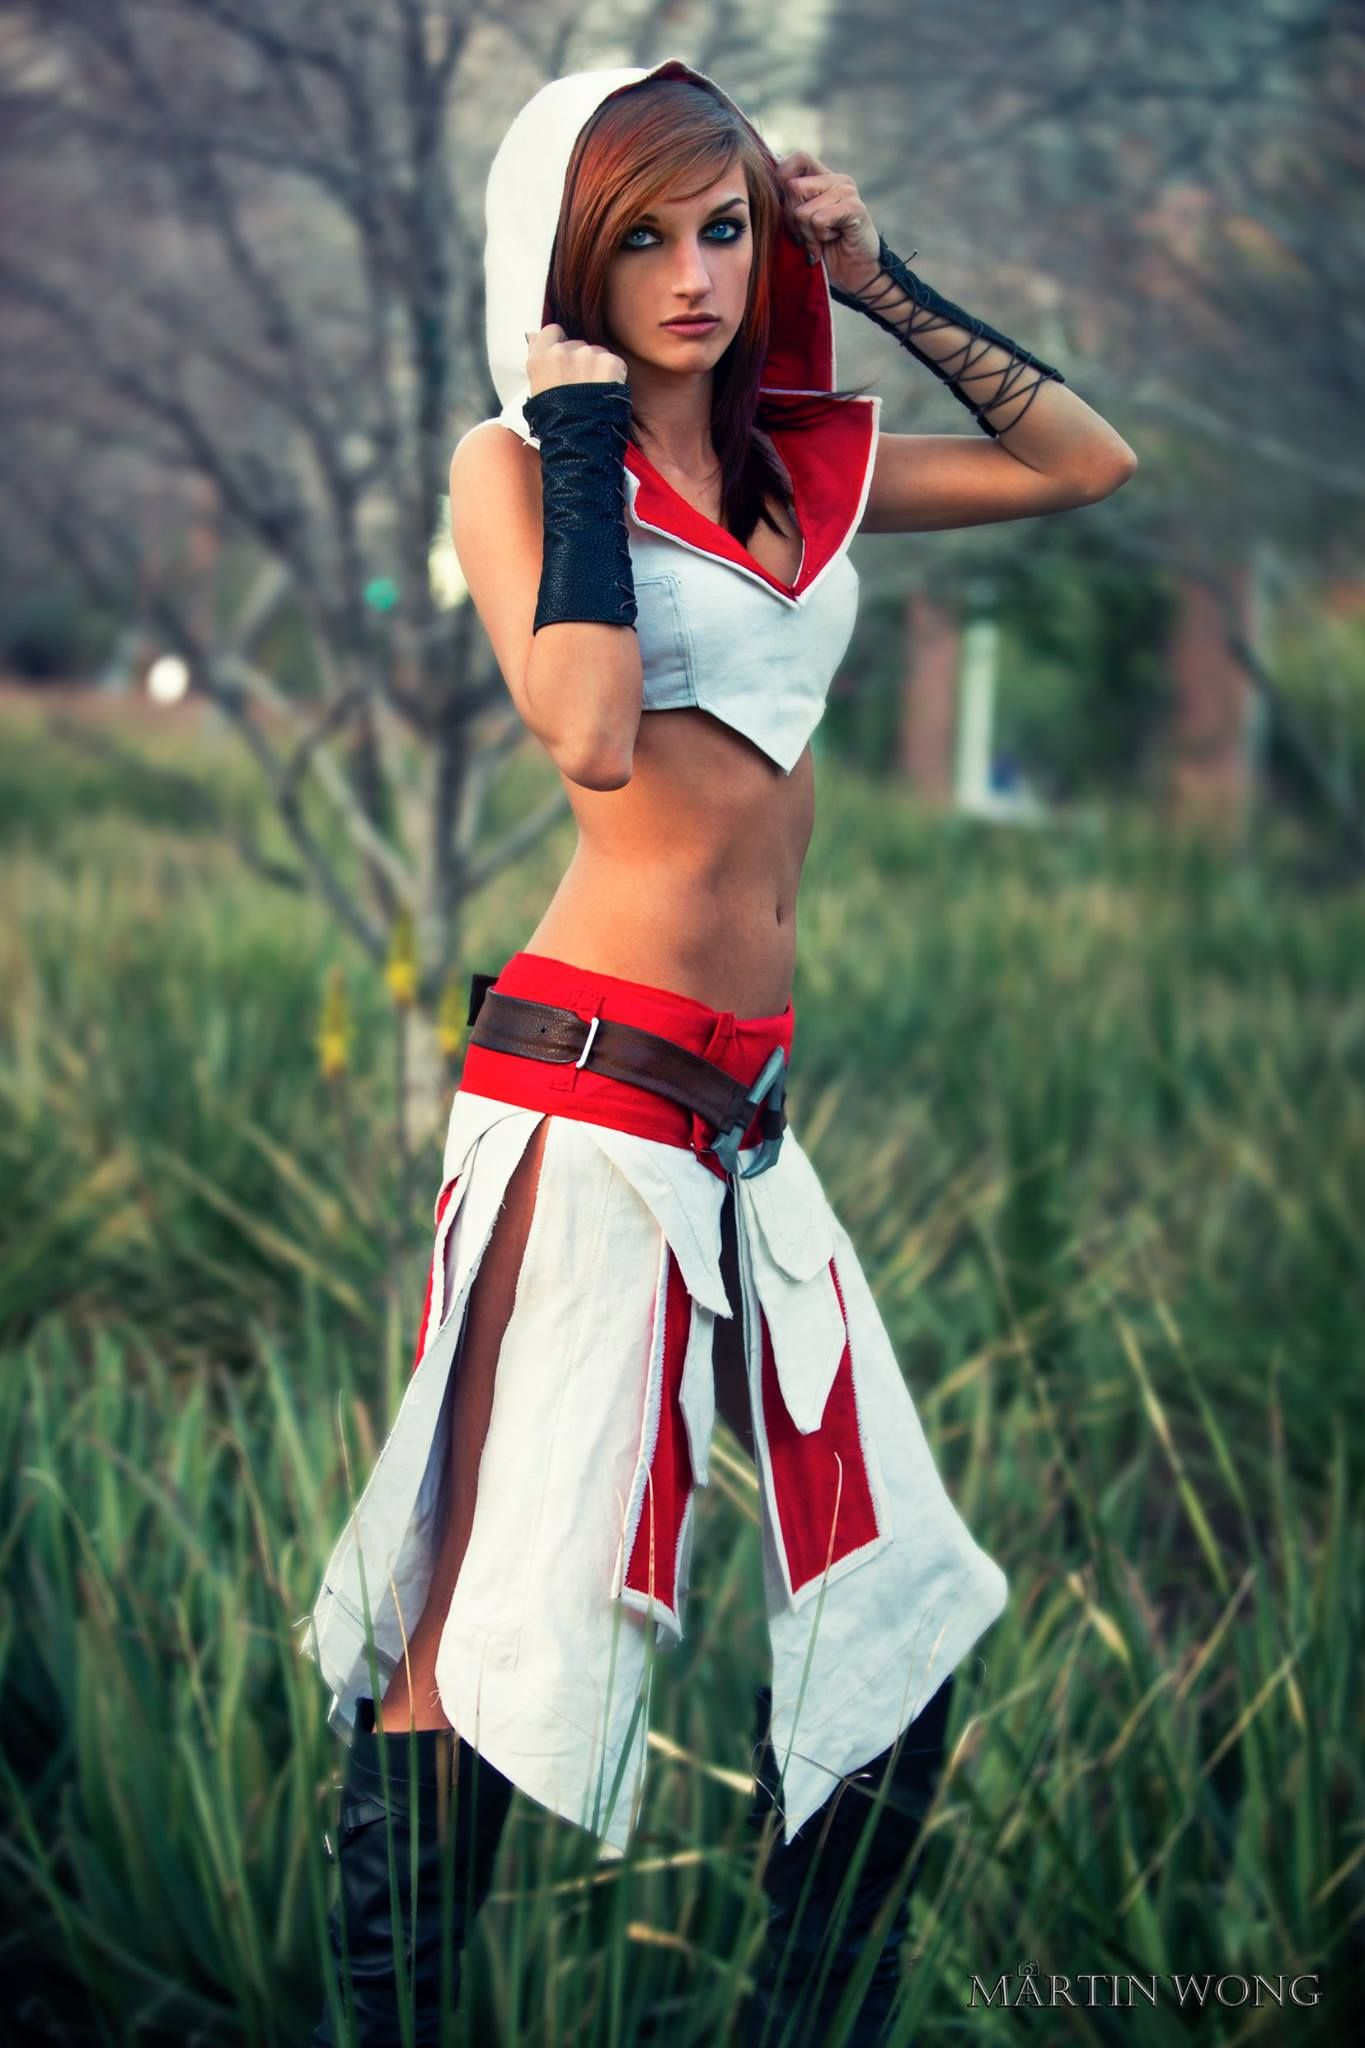 nude assassins creed girl